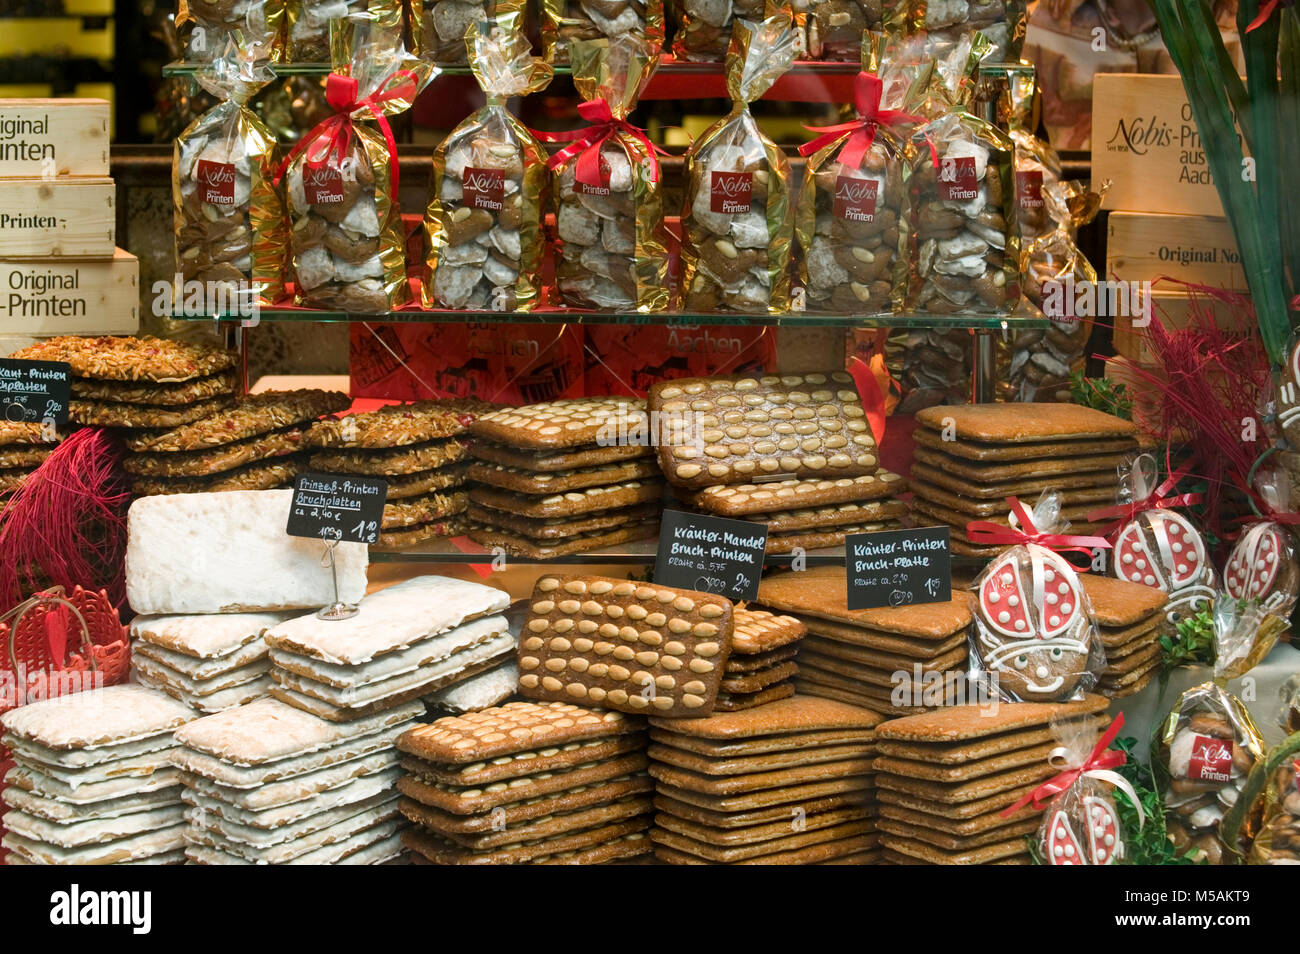 Aachener Printen gingerbread speciality, Aachen, Aix-la-Chapelle, North Rhine-Westphalia, Germany Stock Photo